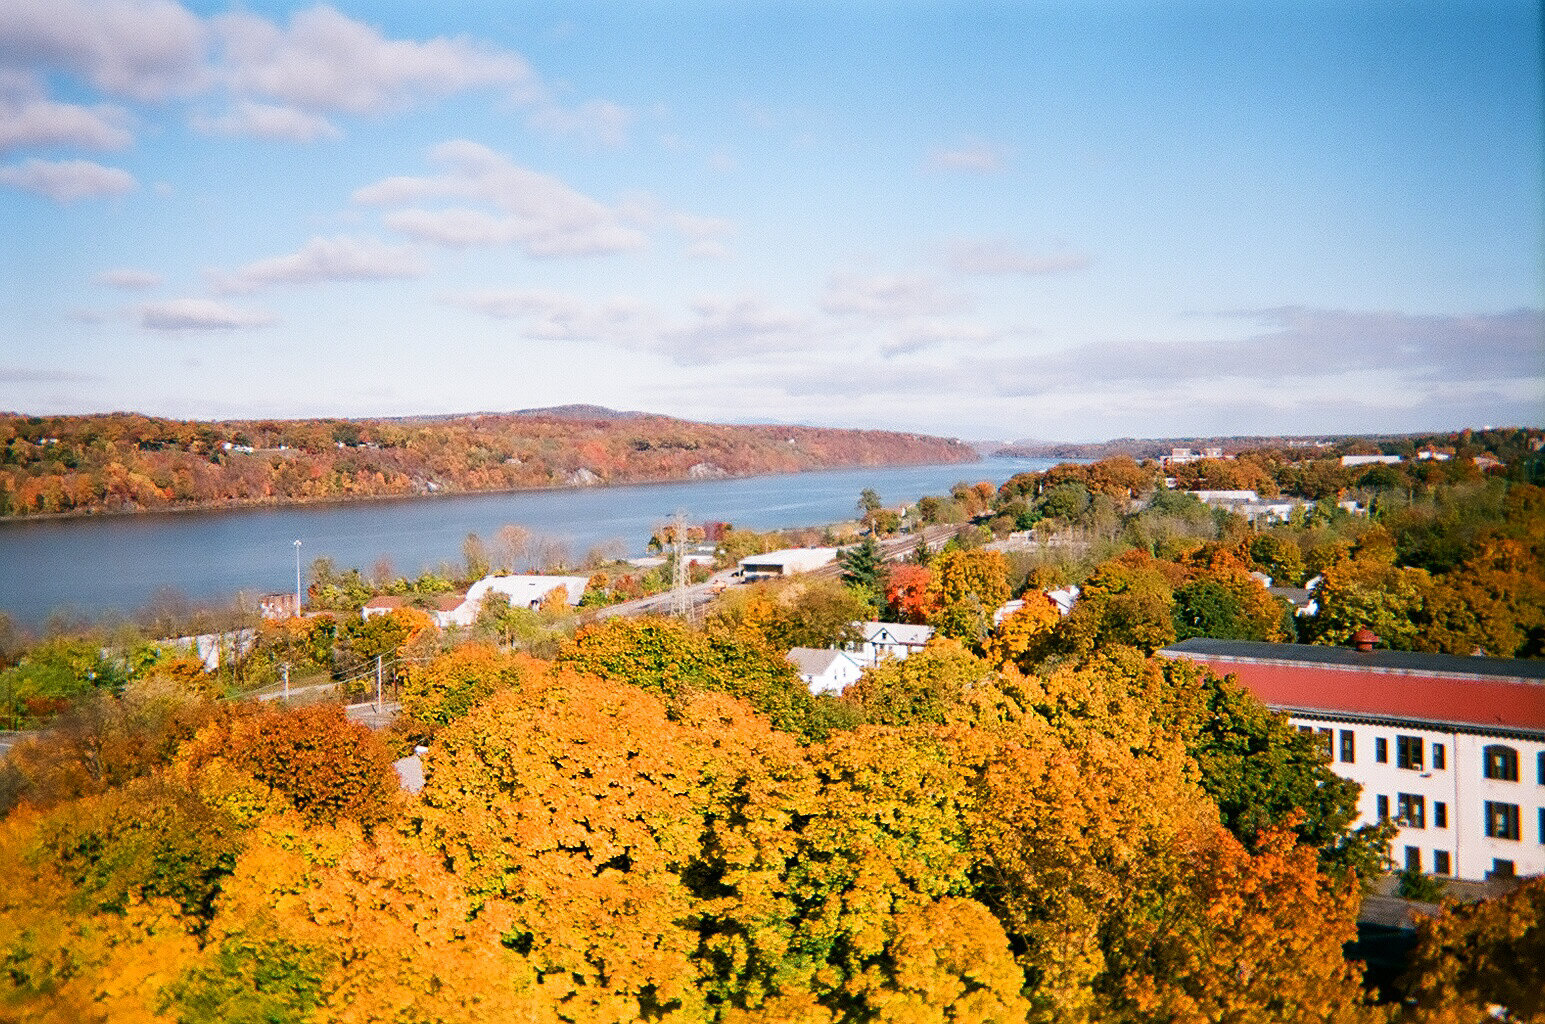 Hudson_River_Valley_in_autumn.jpg